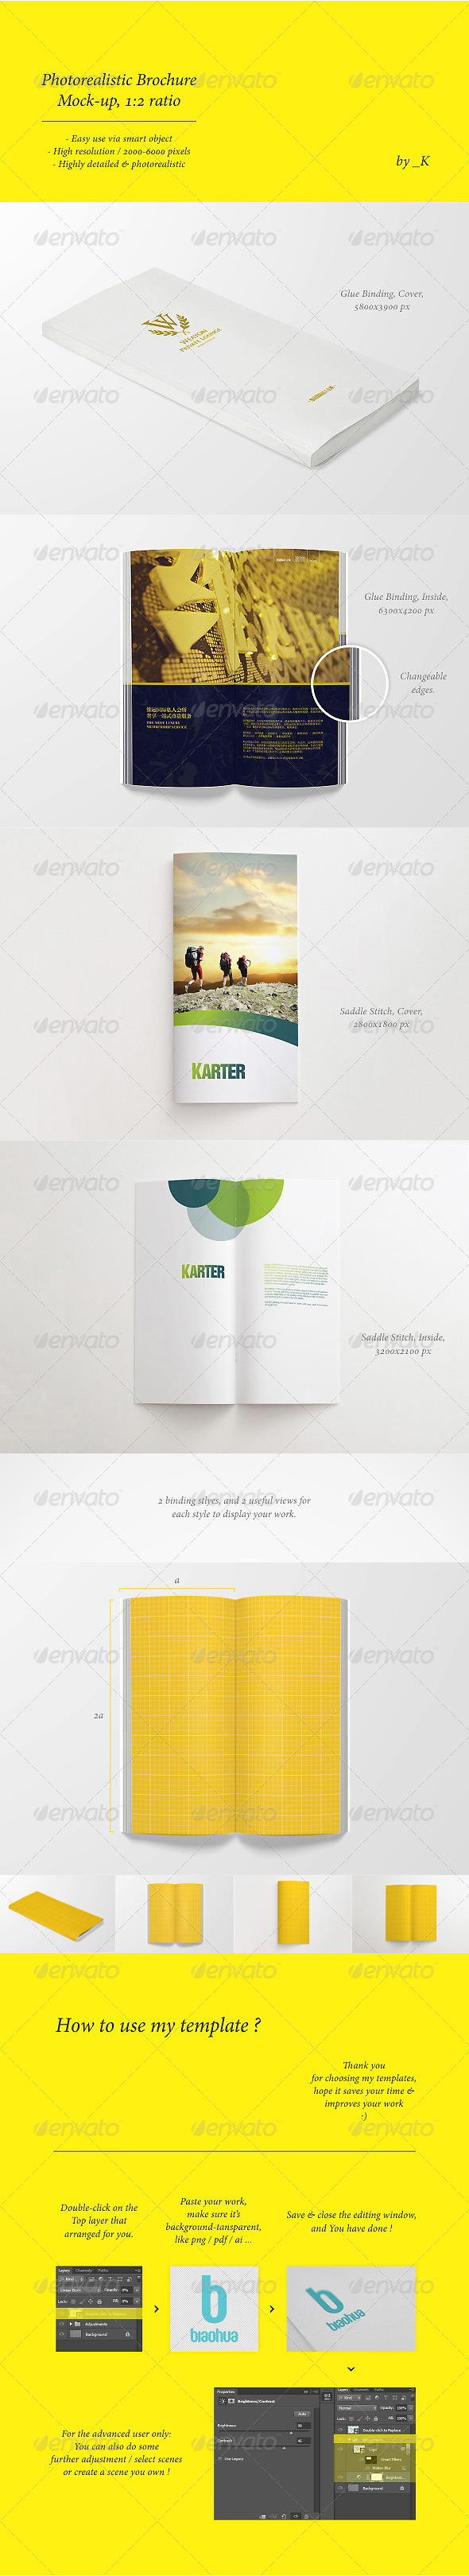 GraphicRiver Photorealistic Brochure Book Mock-Up 1 2 ratio 4912939